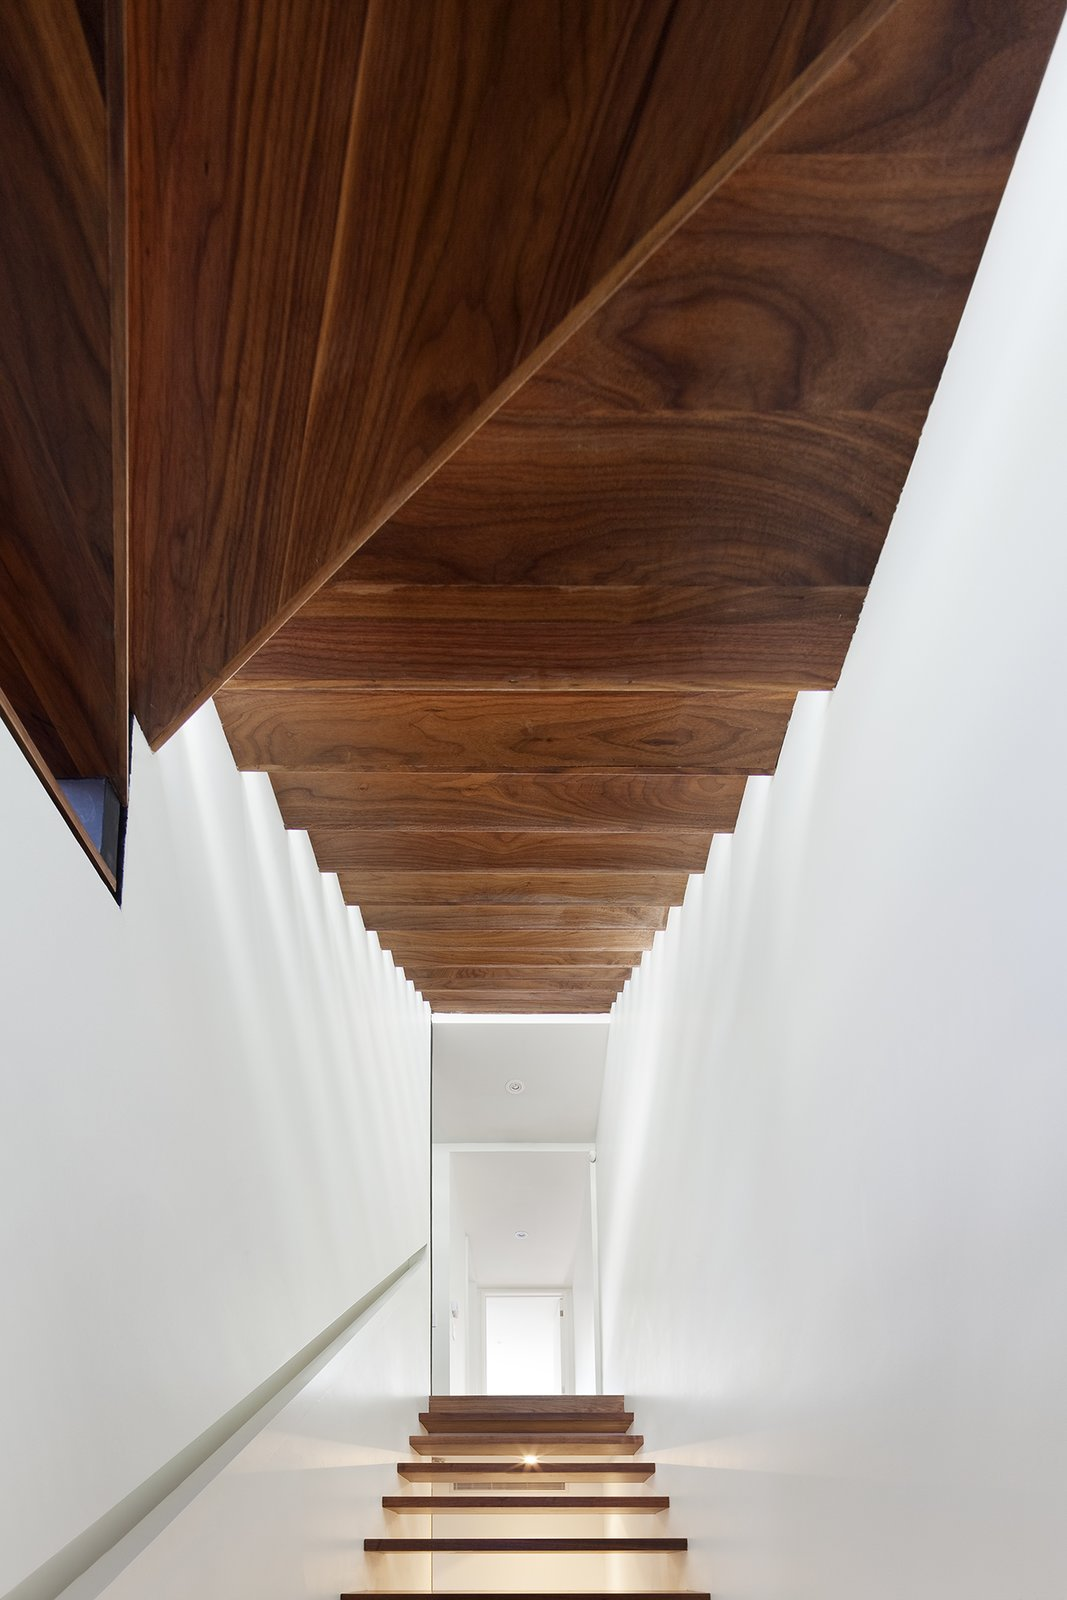 """The original stairs were not lined up vertically, which took up much of the internal space,"" Dubbeldam explains. The architect replaced them with black walnut wood risers that seem to float from the basement to the third floor, allowing light to spill into the house's once-dark interior."